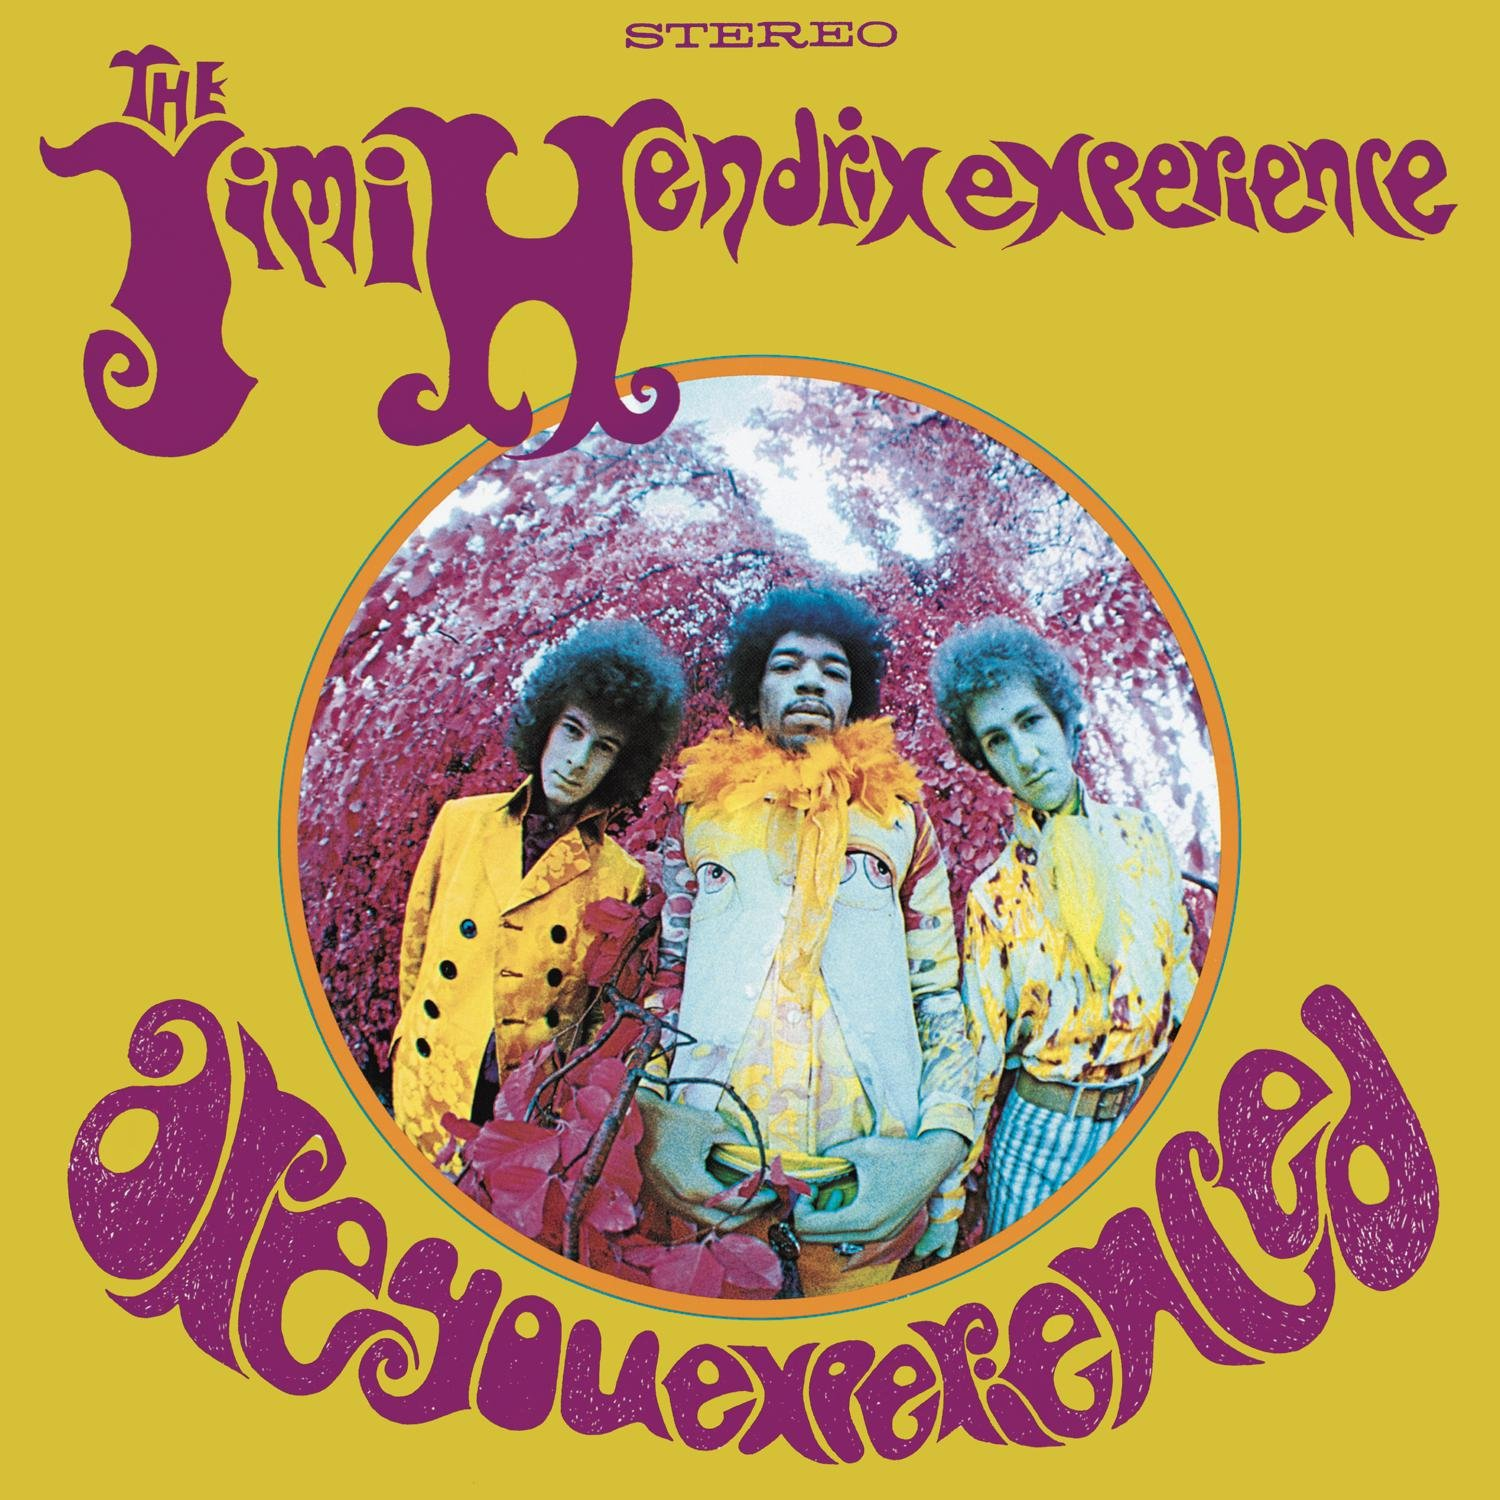 The Jimi Hendrix Experience - Are You Experienced - Amazon.com Music